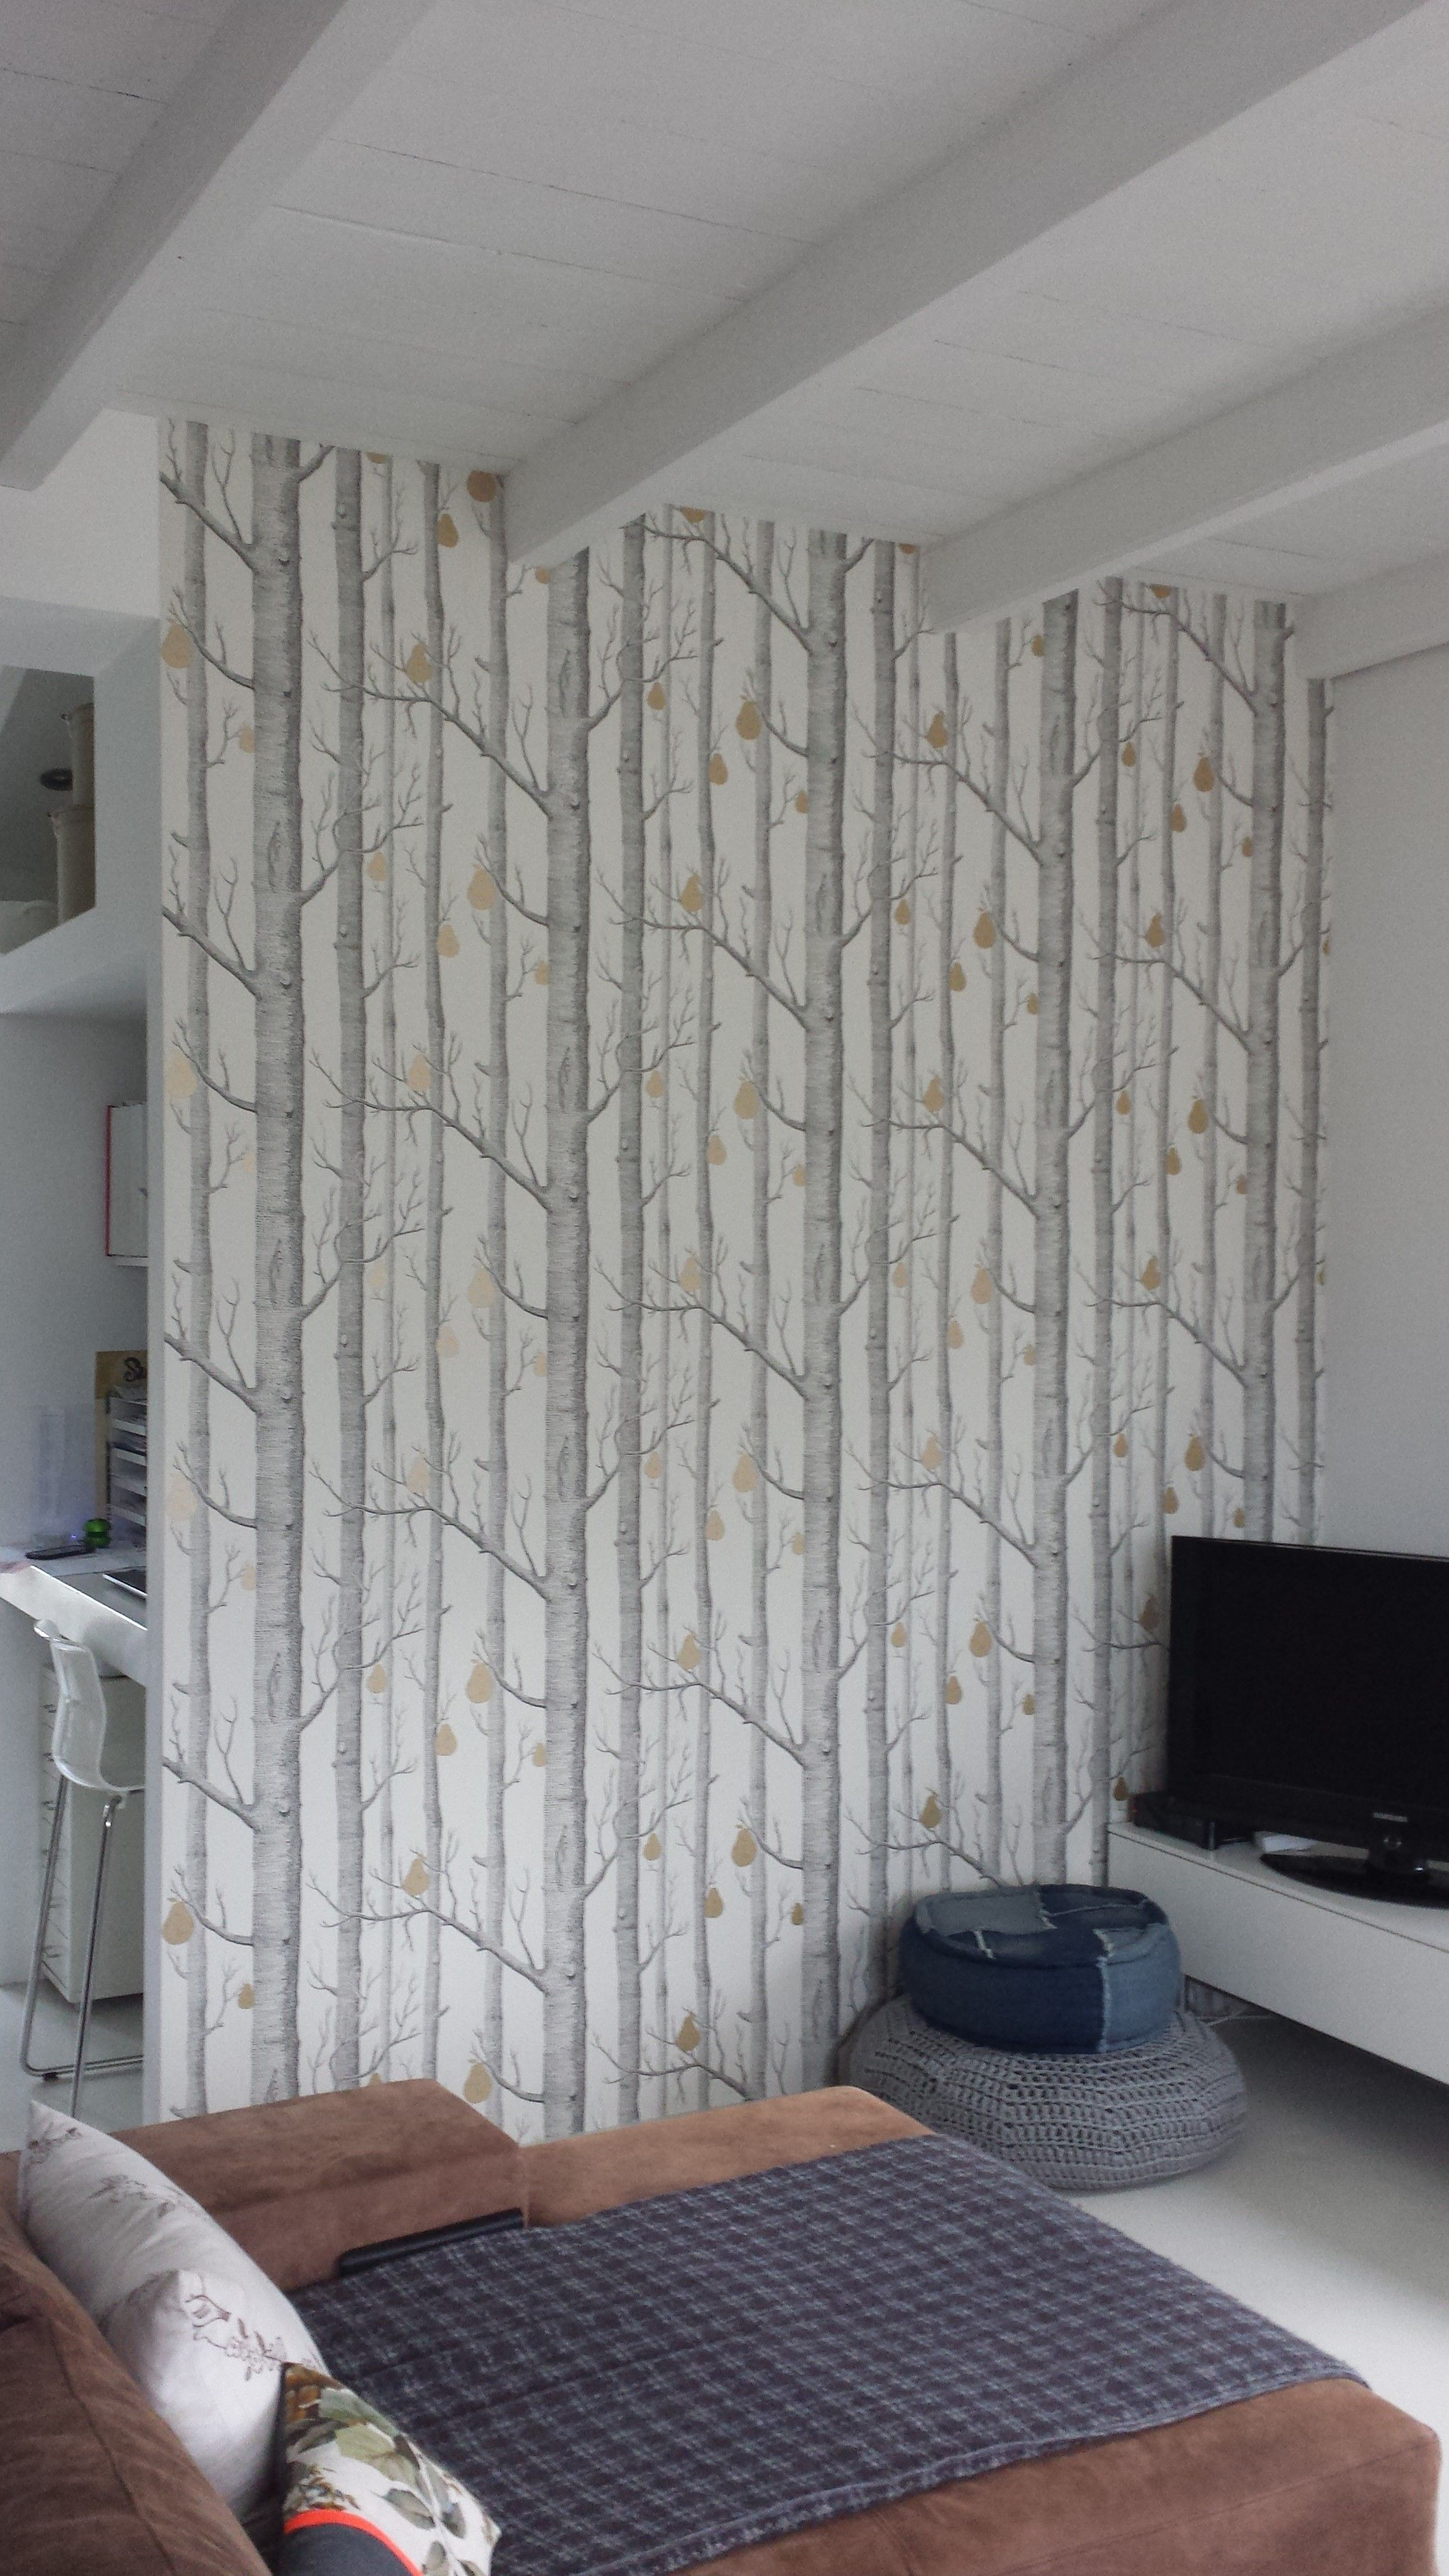 Wallpaper Woods Pears From Cole Son Home Makeover In